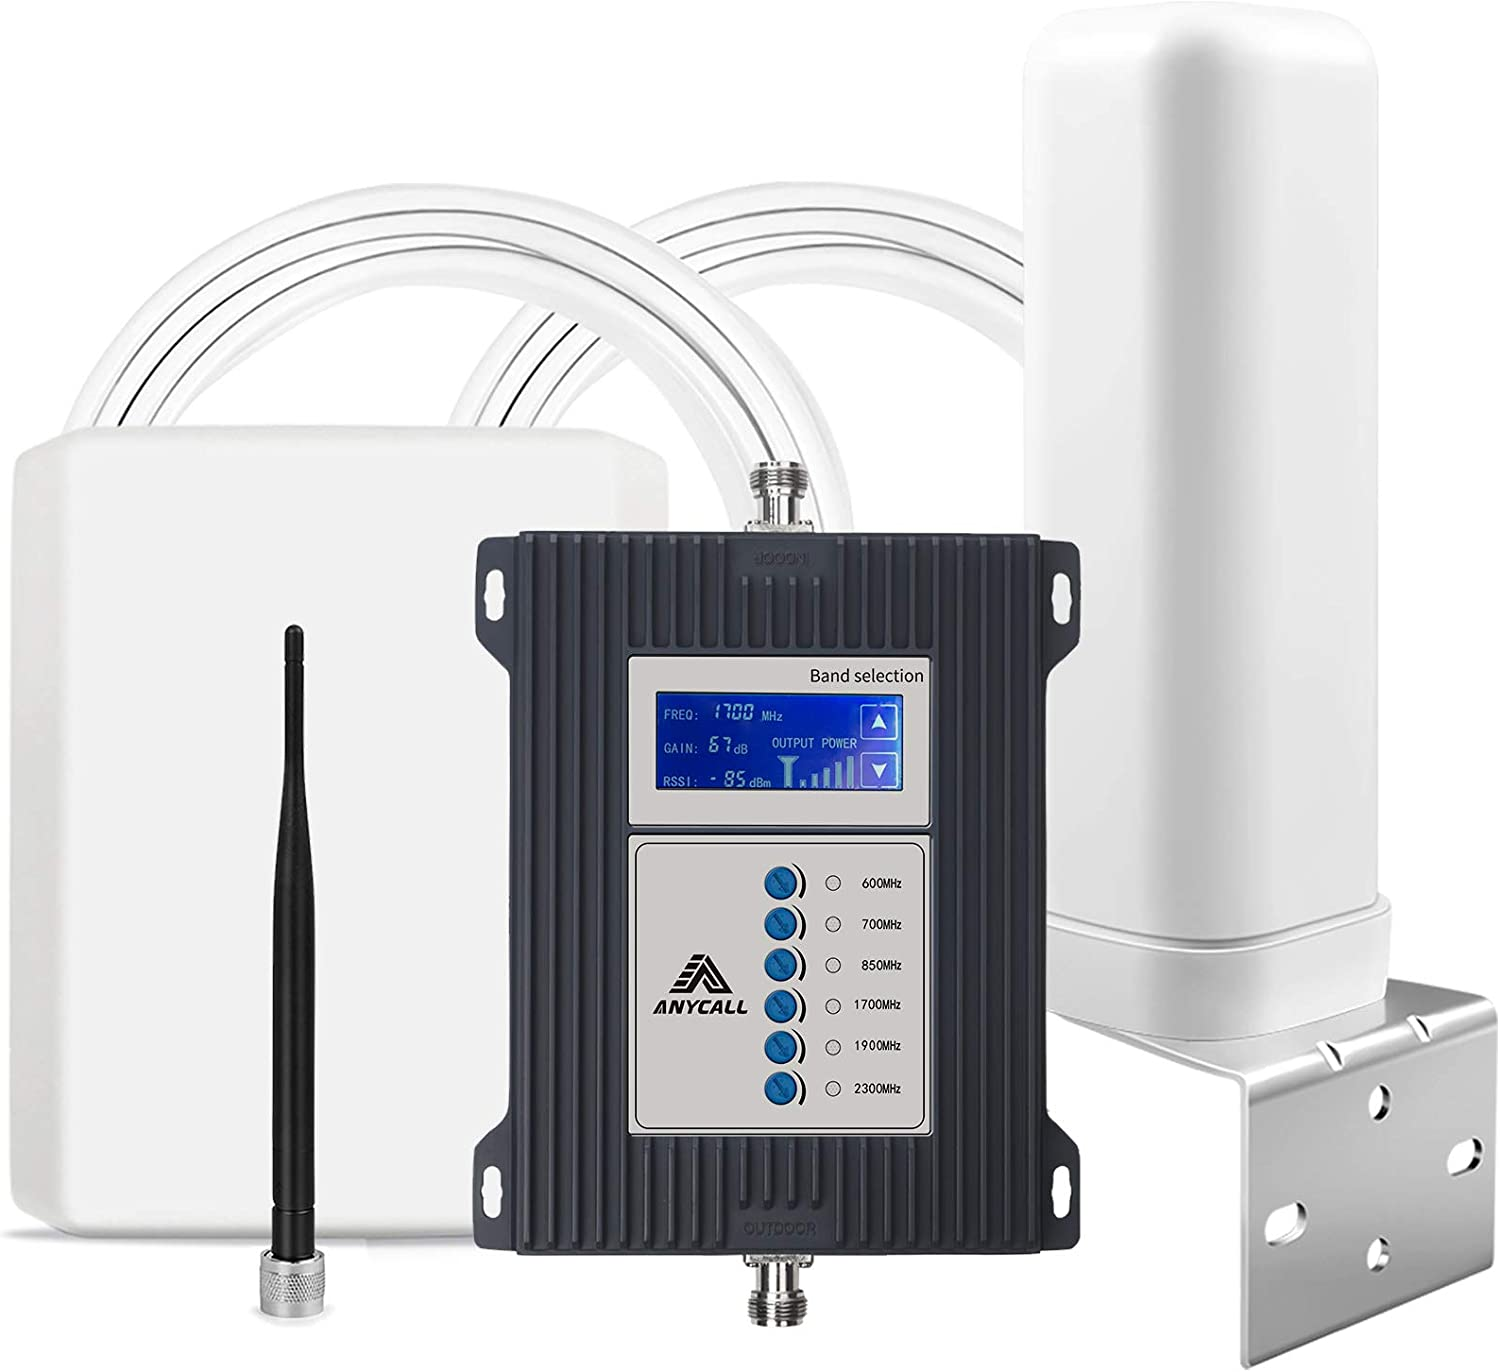 5G Ready Cell Phone Booster 7 Band Mobile Signal Booster Cellular Service Repeater Amplifier Kit for Home/Office/RV - Boost 3G 4G LTE 5G Voice & Data for All US Carriers AT&T Verizon T-Mobile Sprint